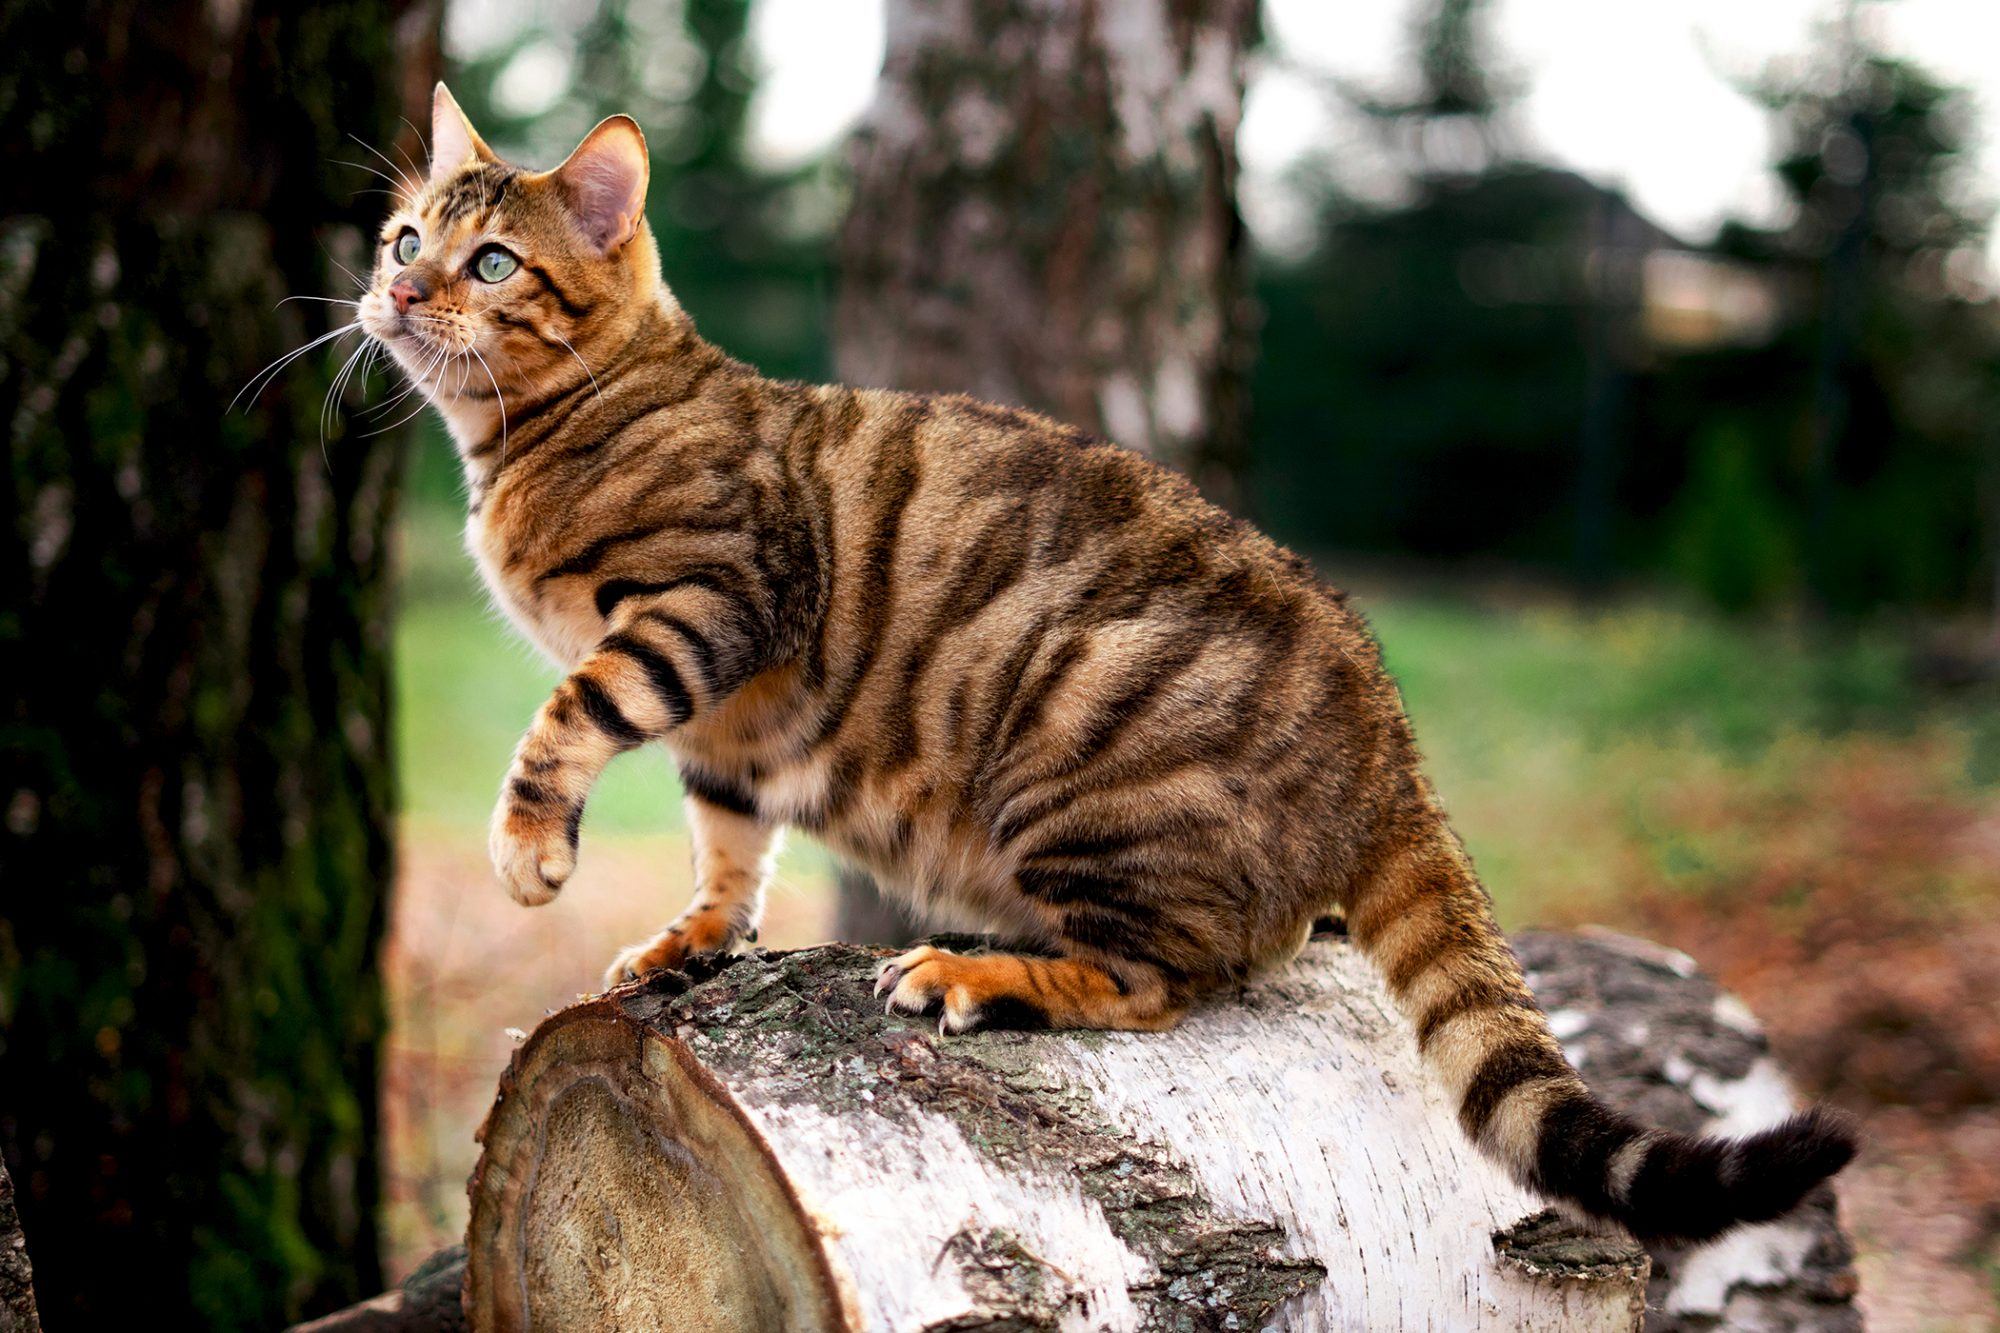 Toyer cat sits on cut down tree stump outside